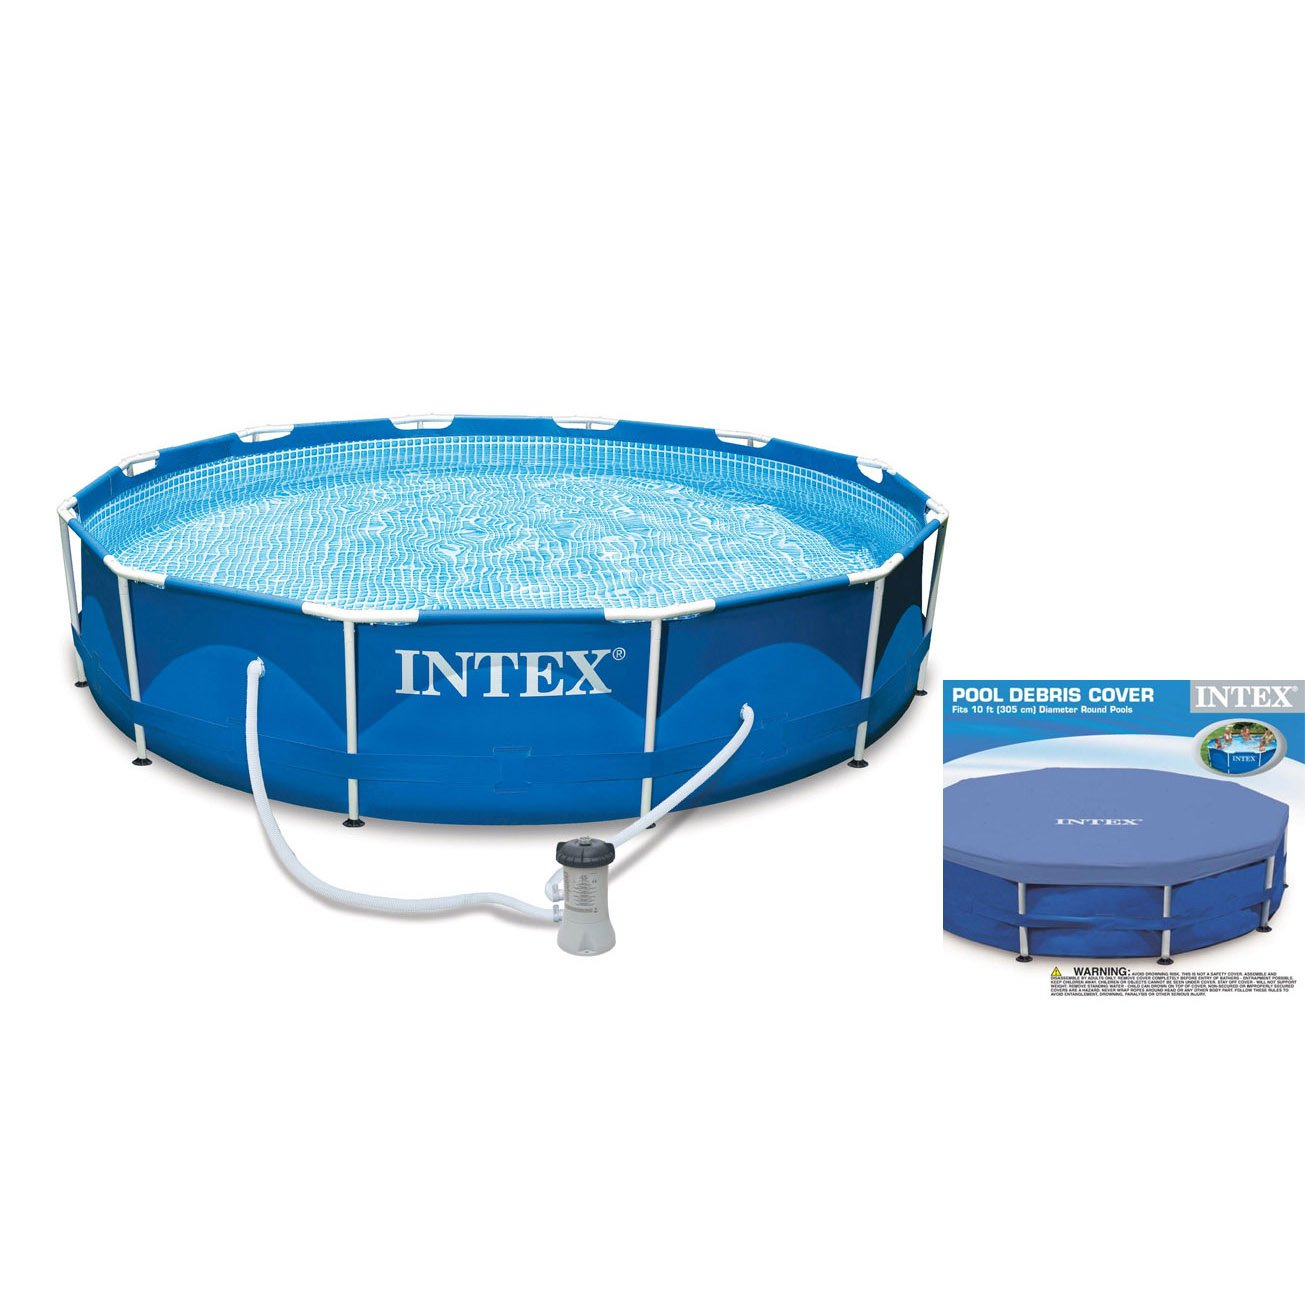 amazoncom intex 10 x 25 foot metal frame swimming pool set w filter pump debris cover garden outdoor - Intex Pools